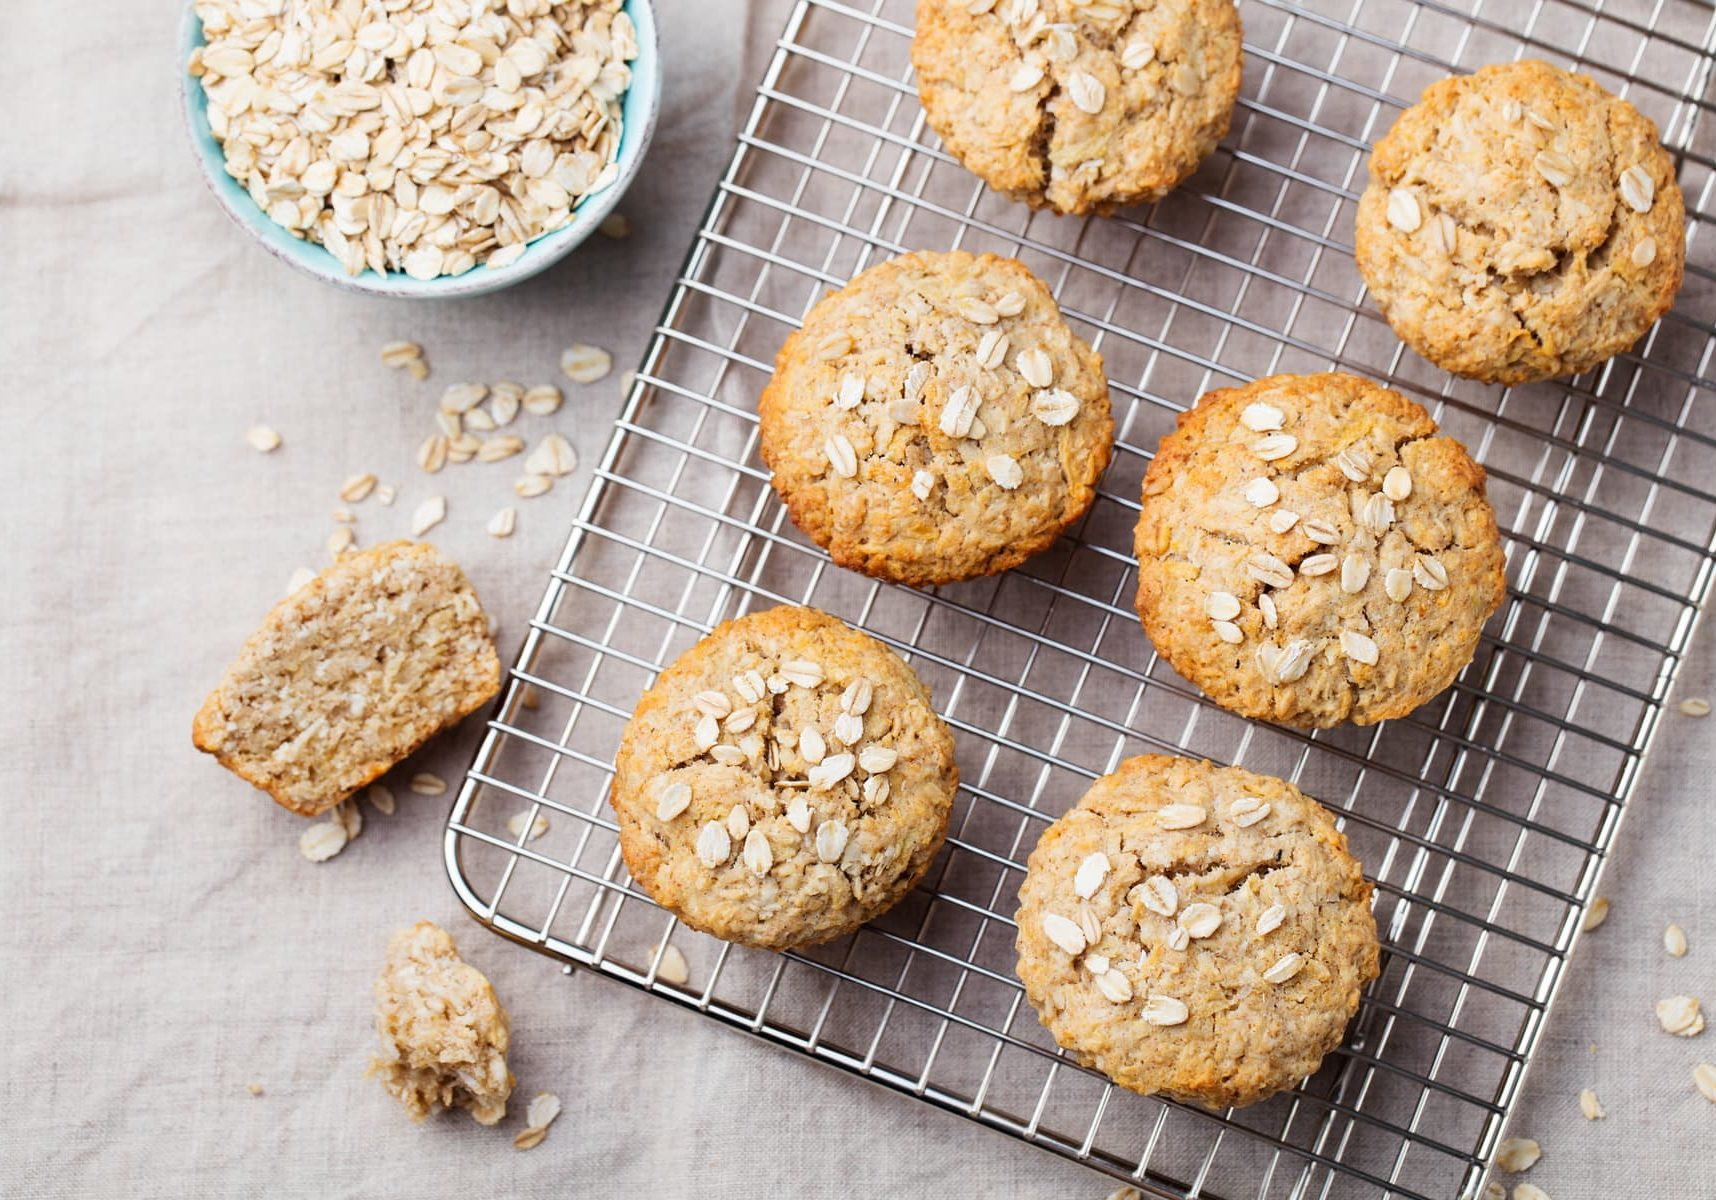 Banana Apple & Date Wholewheat Muffins